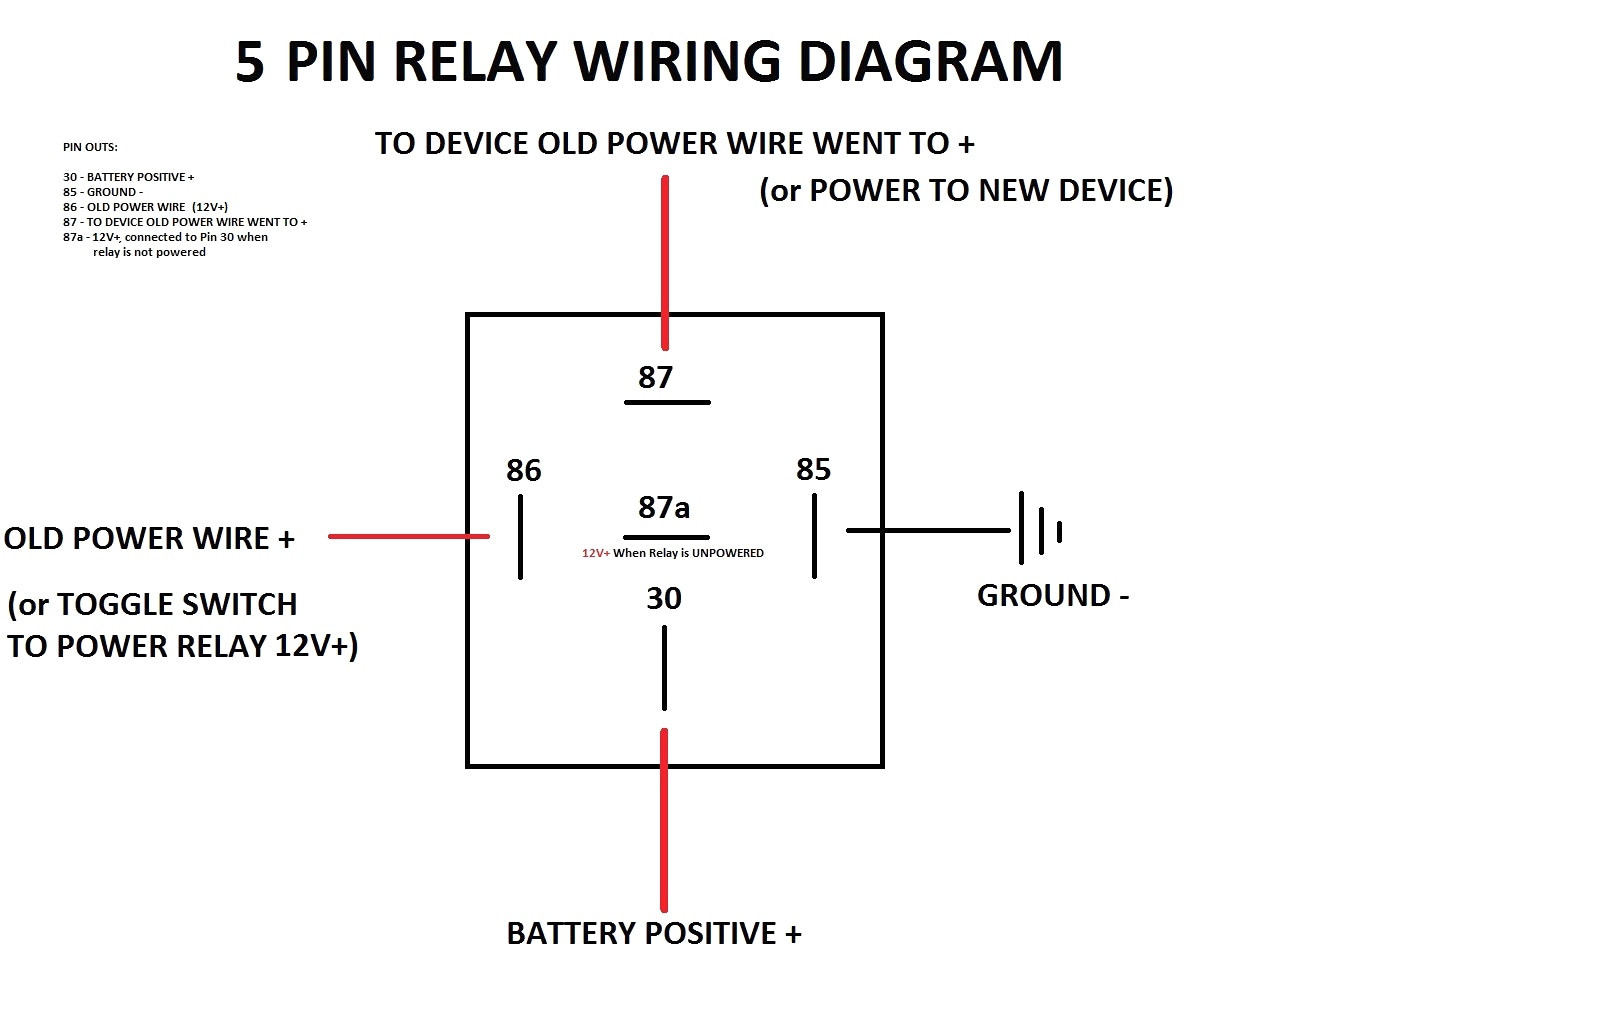 Does A 2 Wire Flasher Have Power On Both Termals Diagram] 3 Terminal Flasher Wiring Diagram Full Version Hd Quality … Of Does A 2 Wire Flasher Have Power On Both Termals